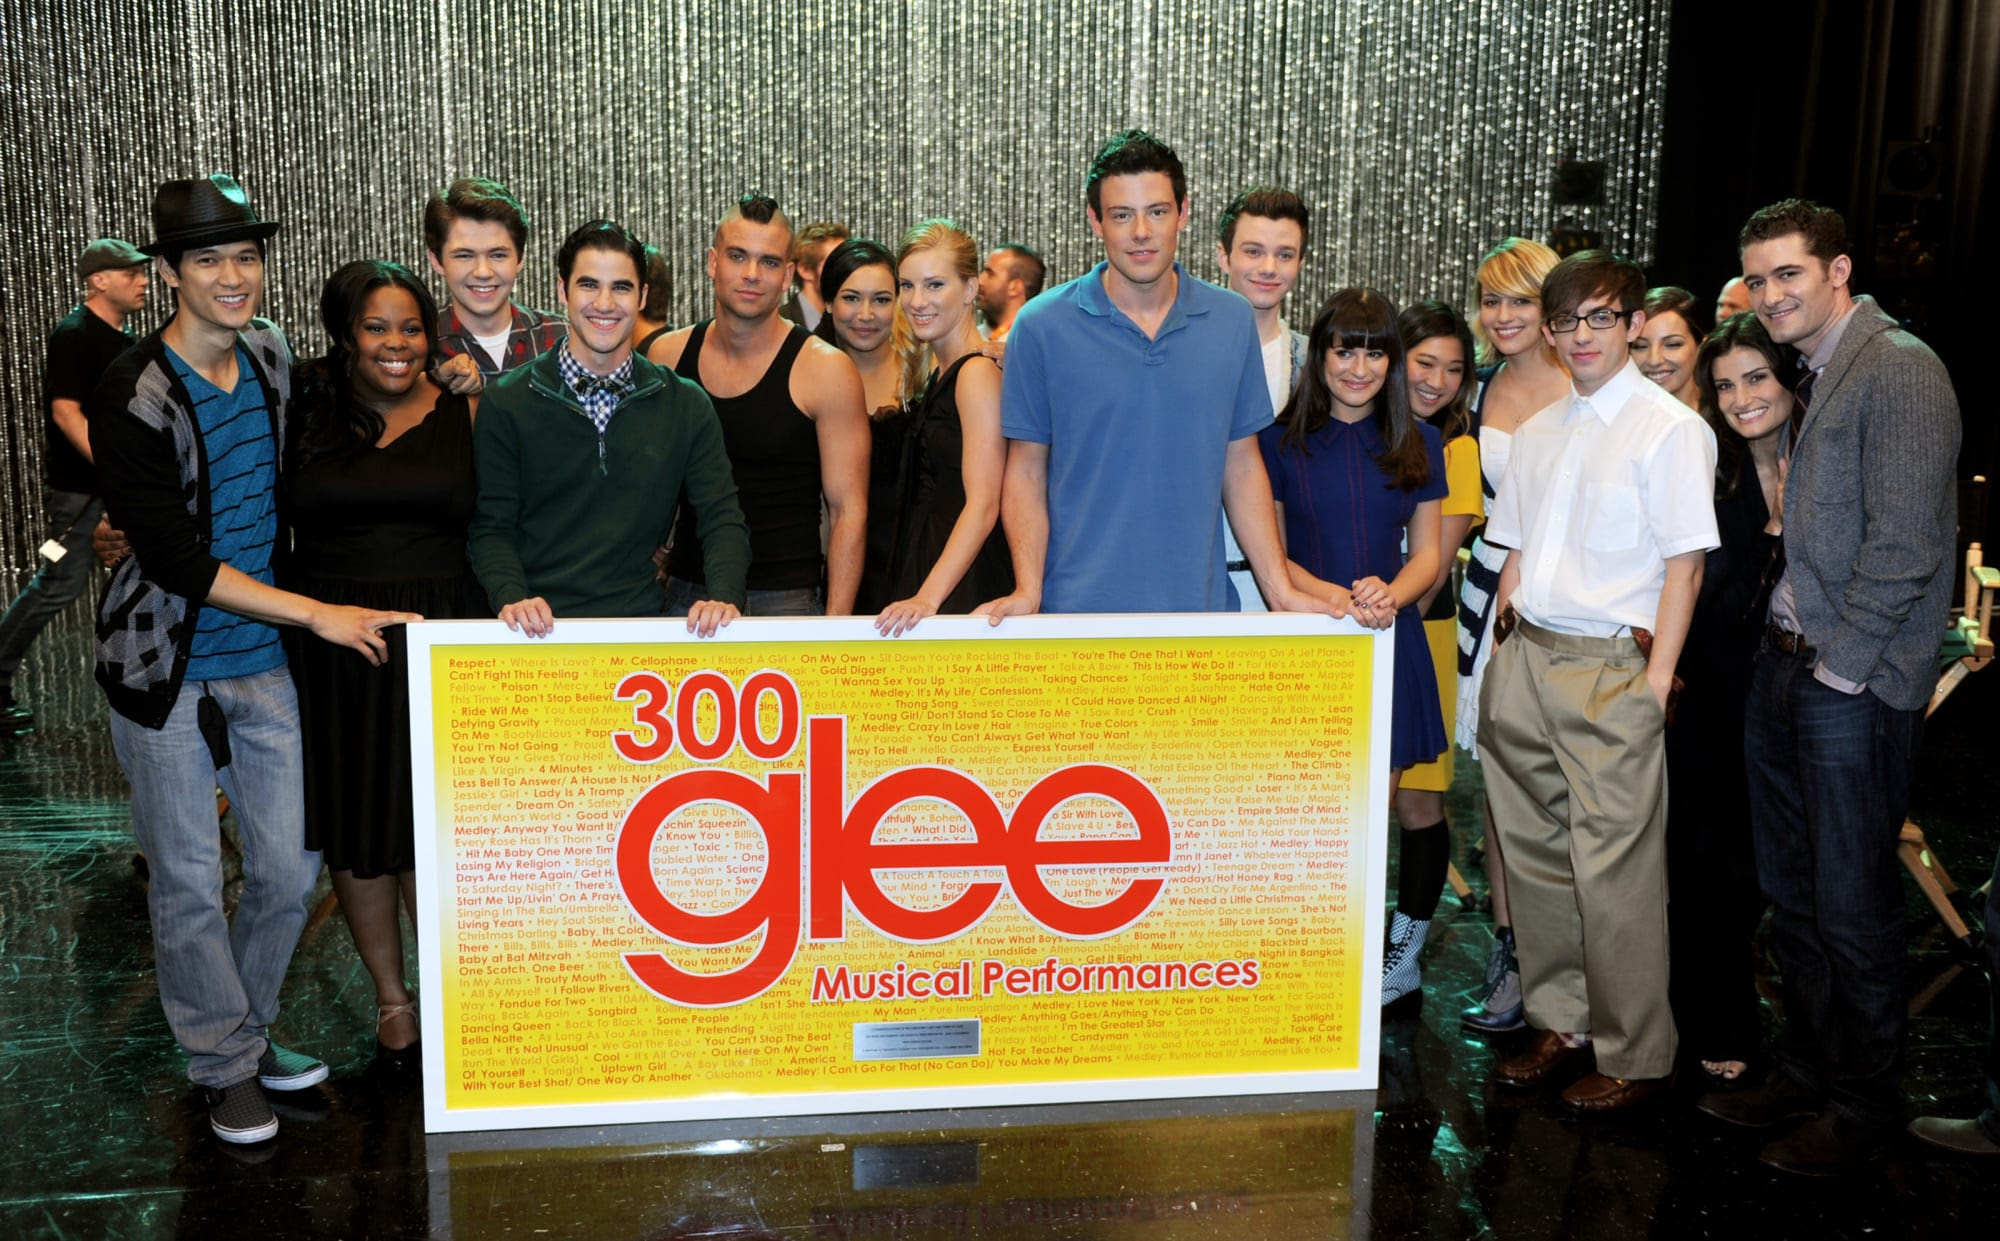 Glee aged so poorly, it's become nearly impossible to rewatch